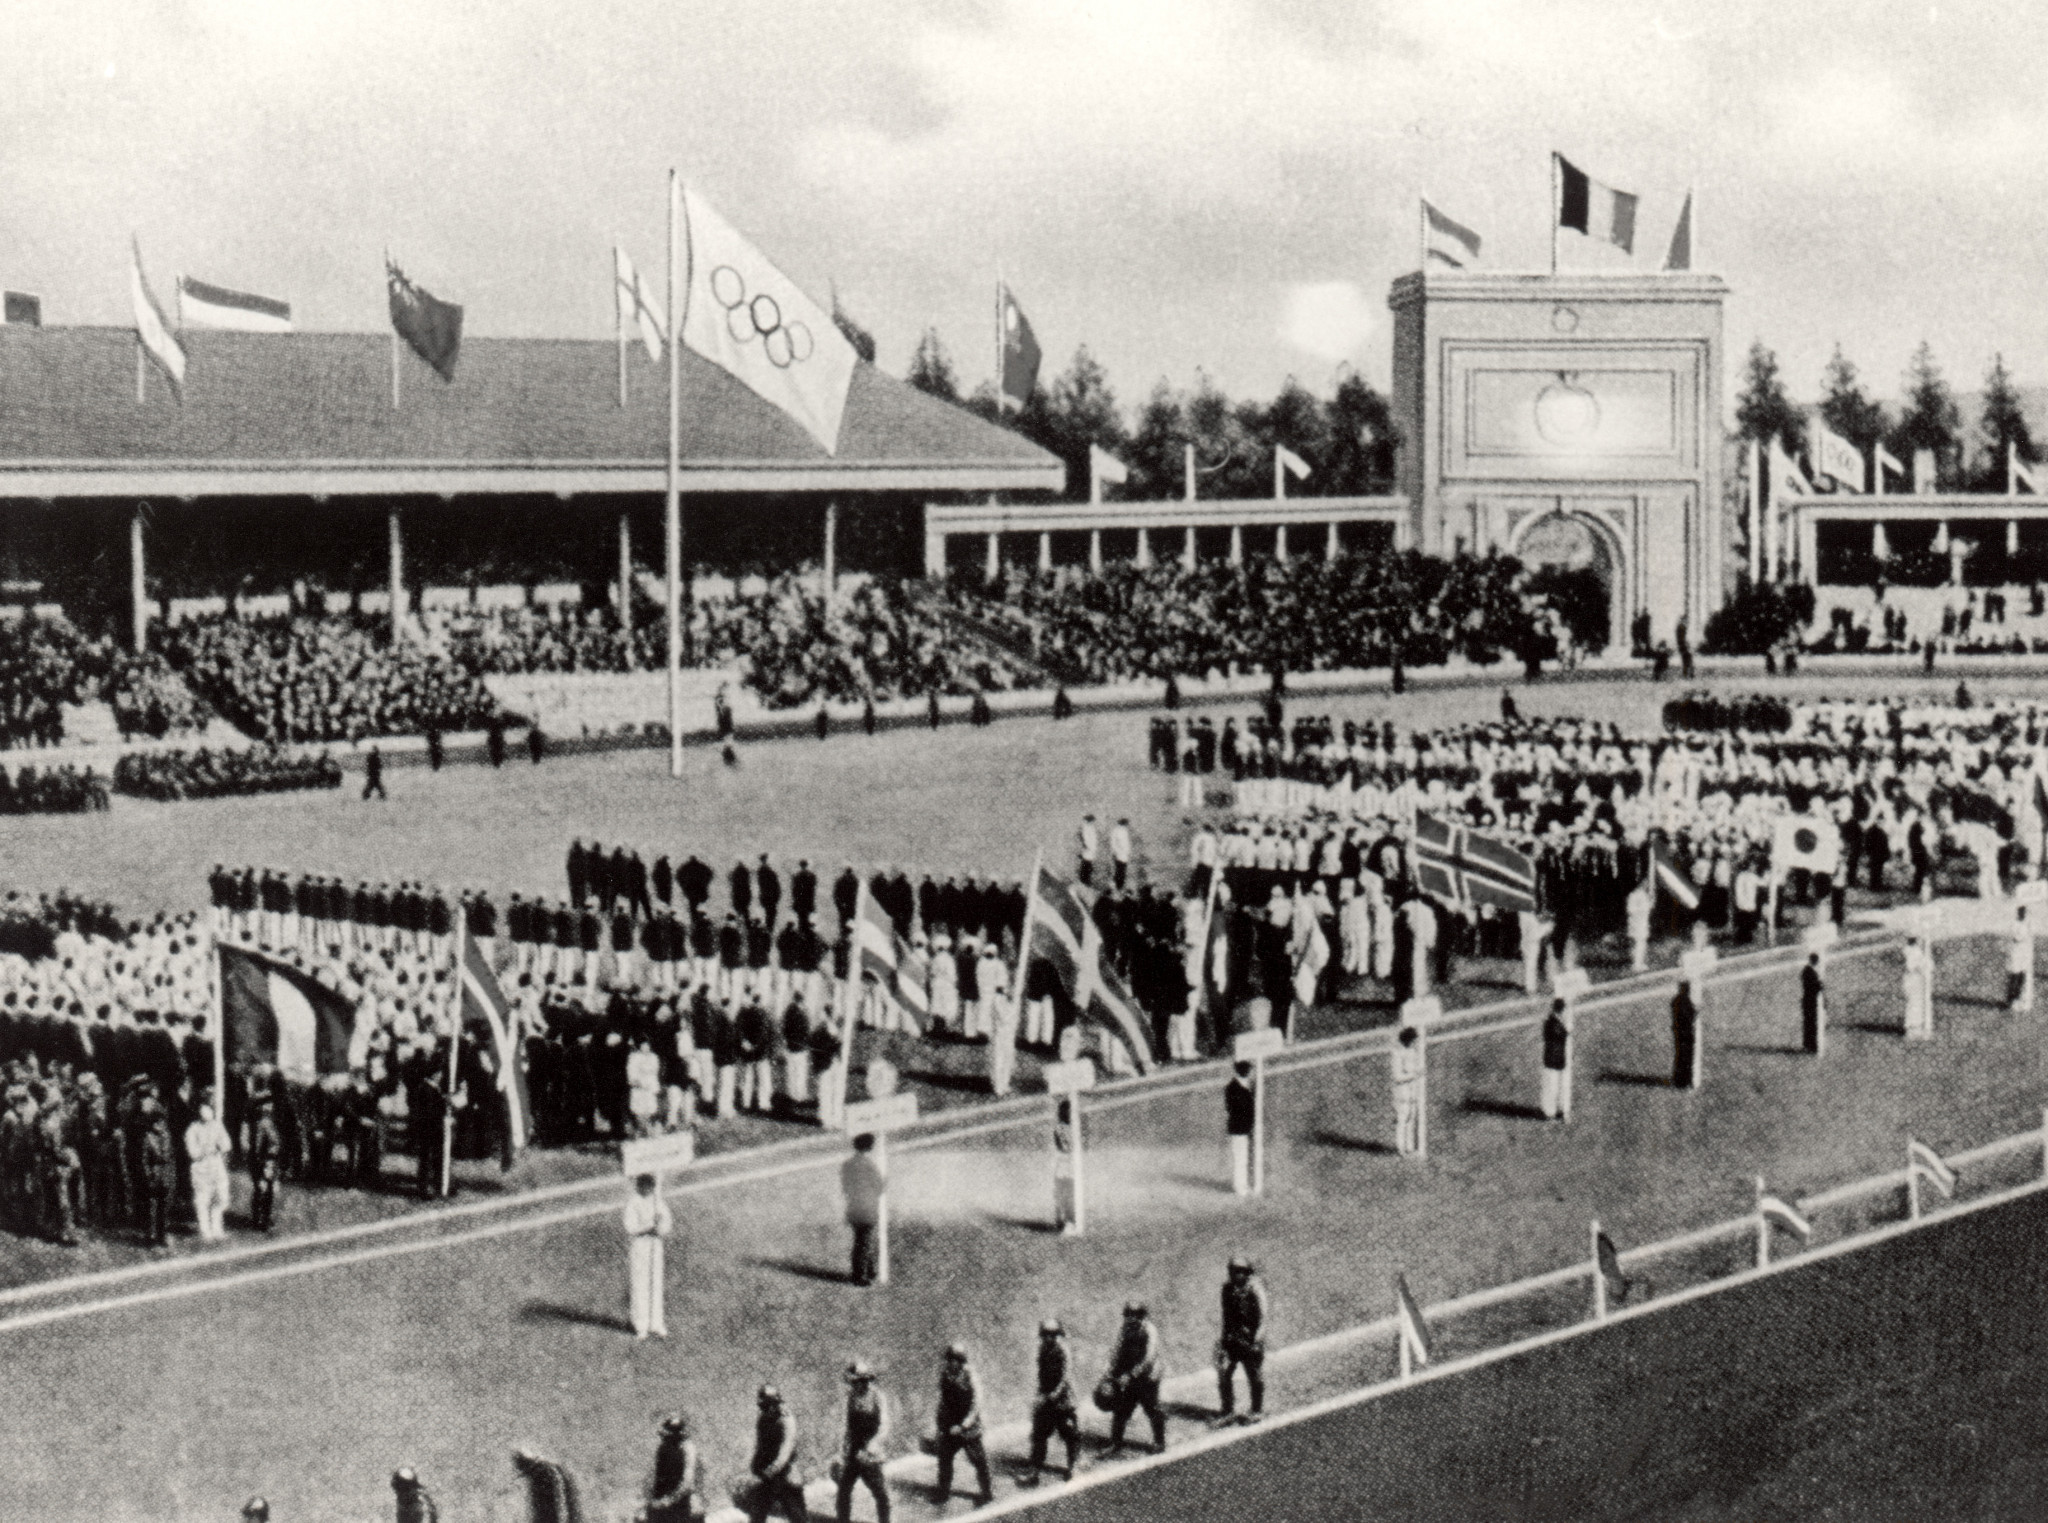 The International Amateur Boxing Federation is founded during the 1920 Olympic Games in Antwerp ©Getty Images